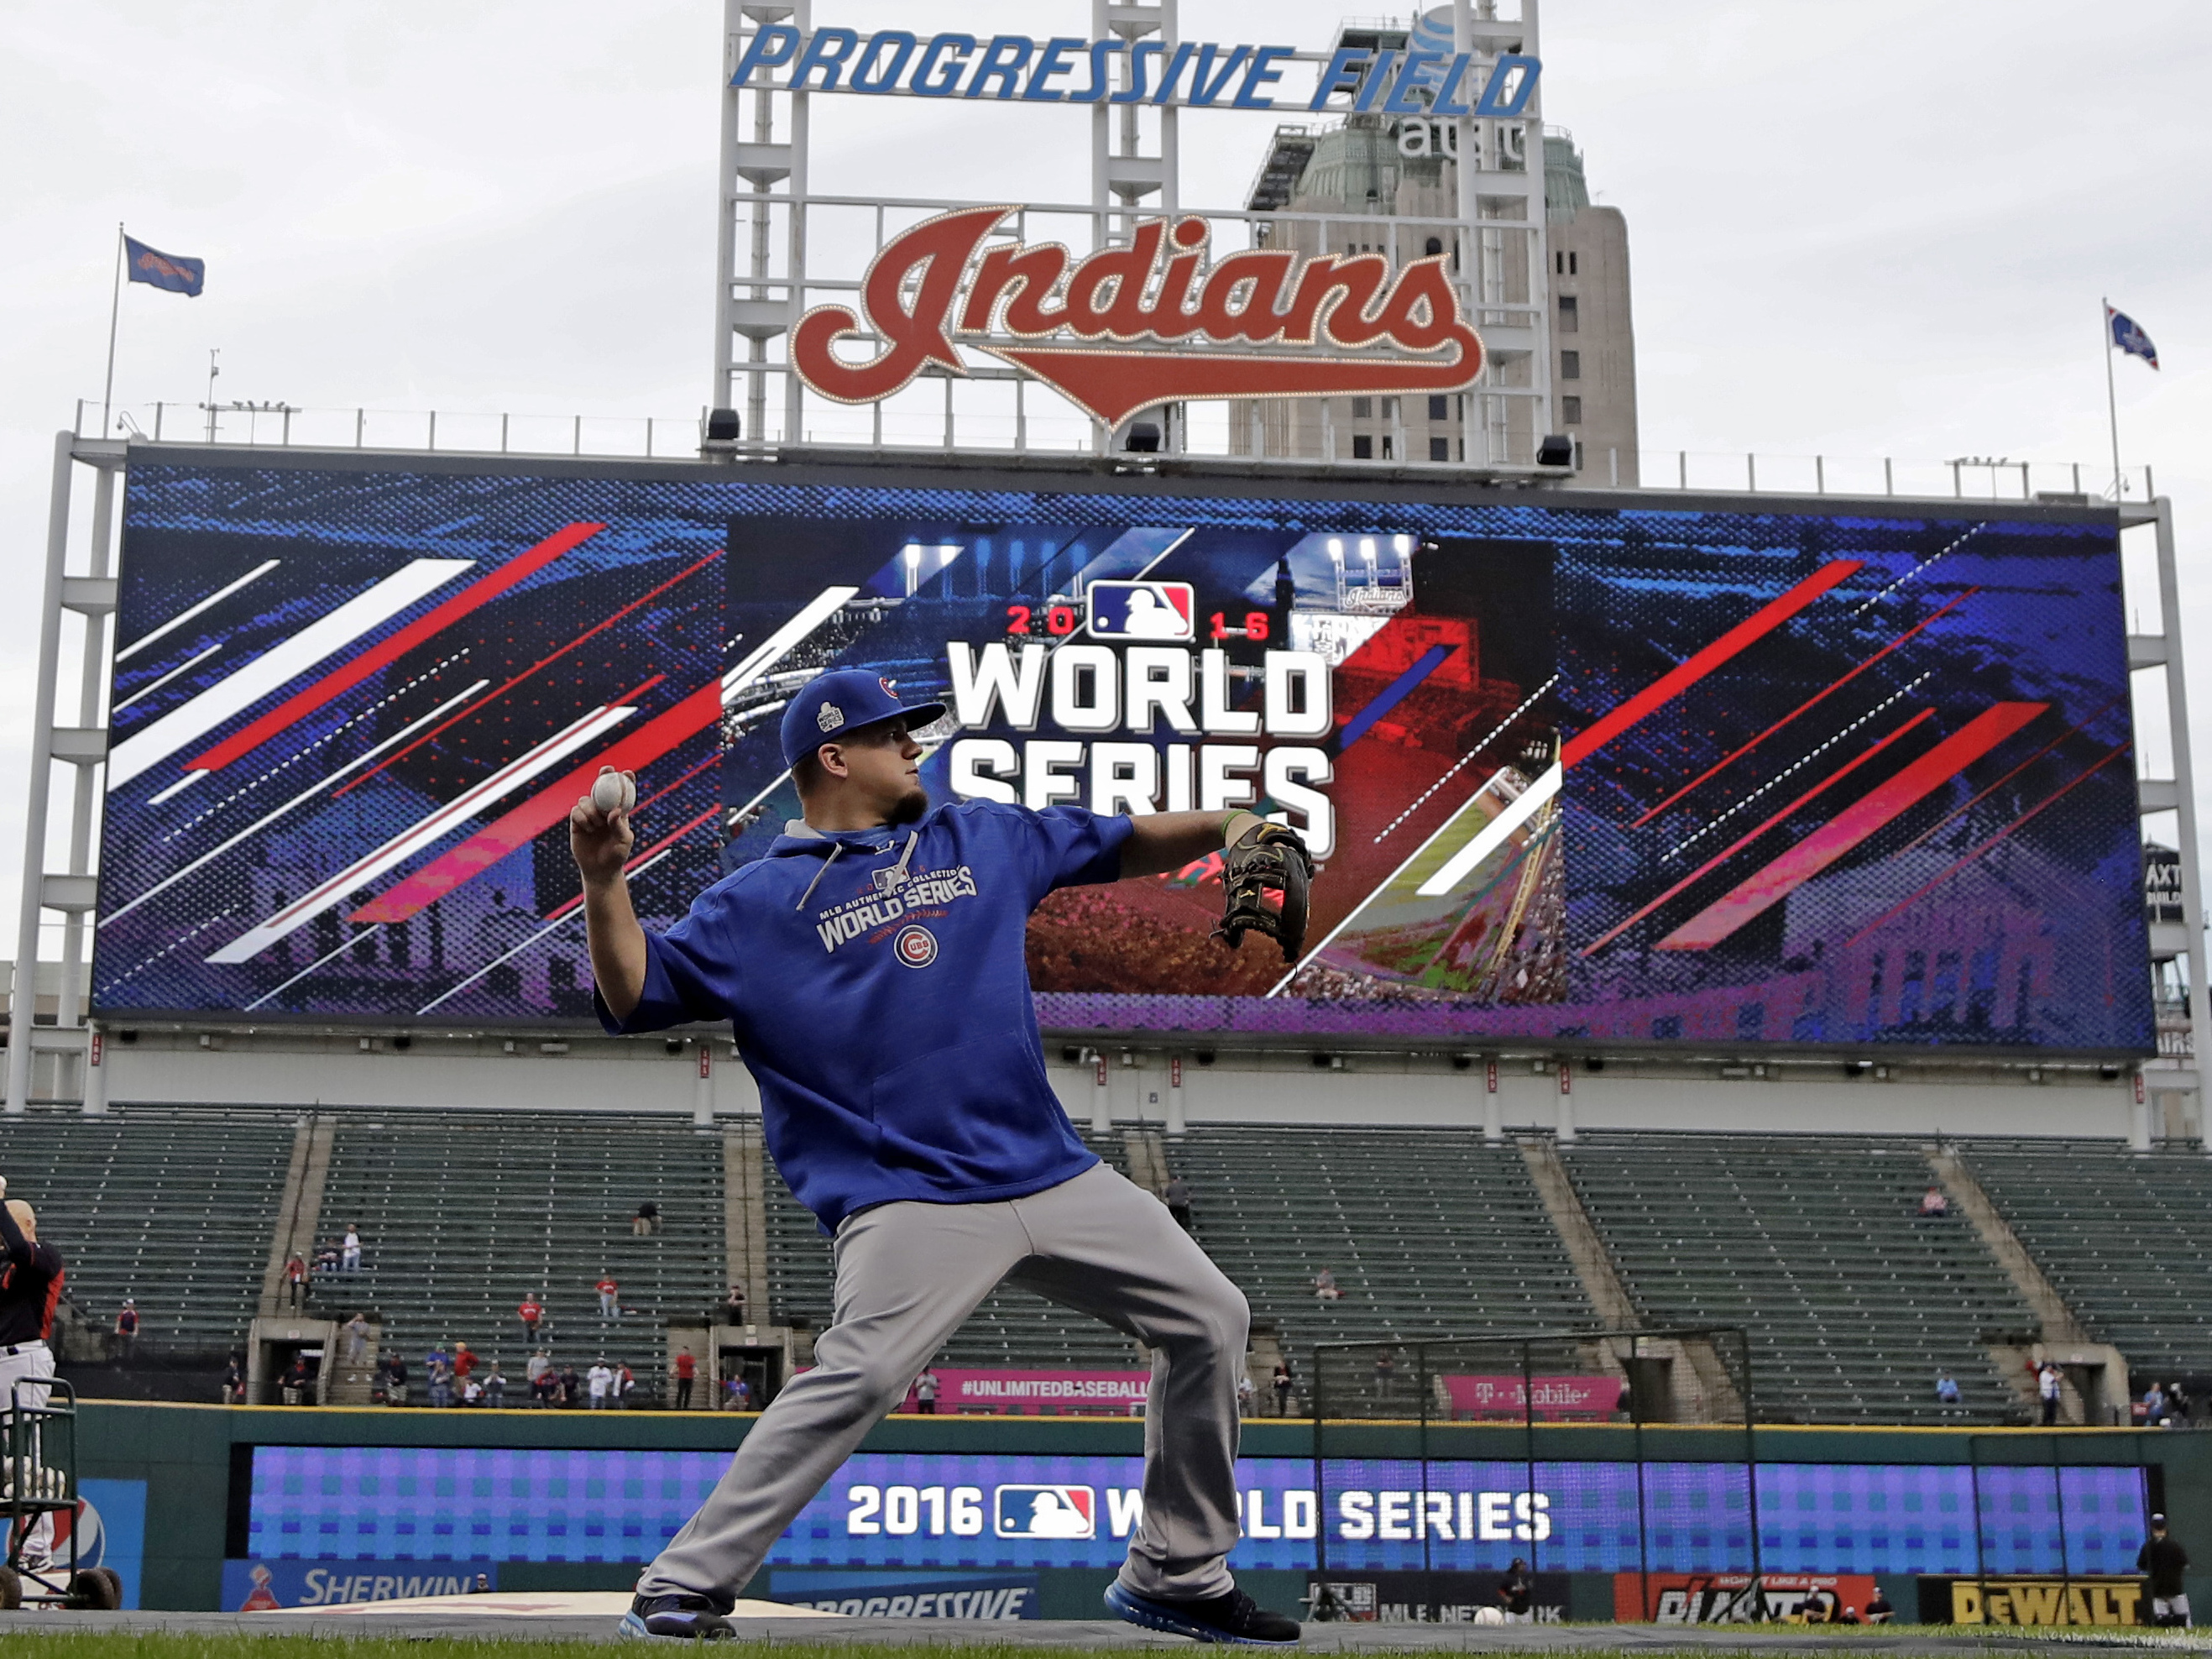 Cubs force World Series Game 7 behind Addison Russell's historic night